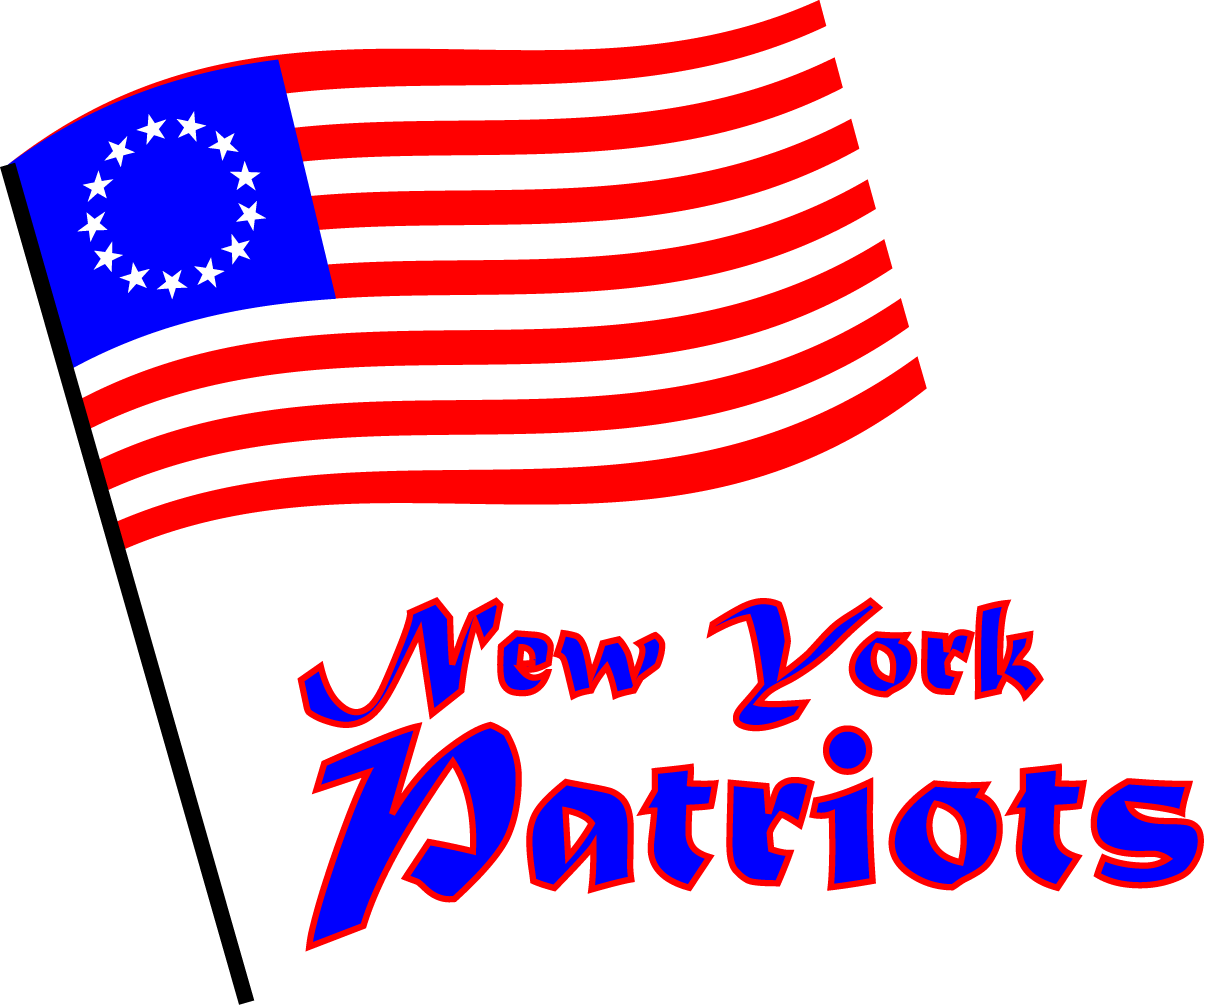 new york patriots logo png 2163